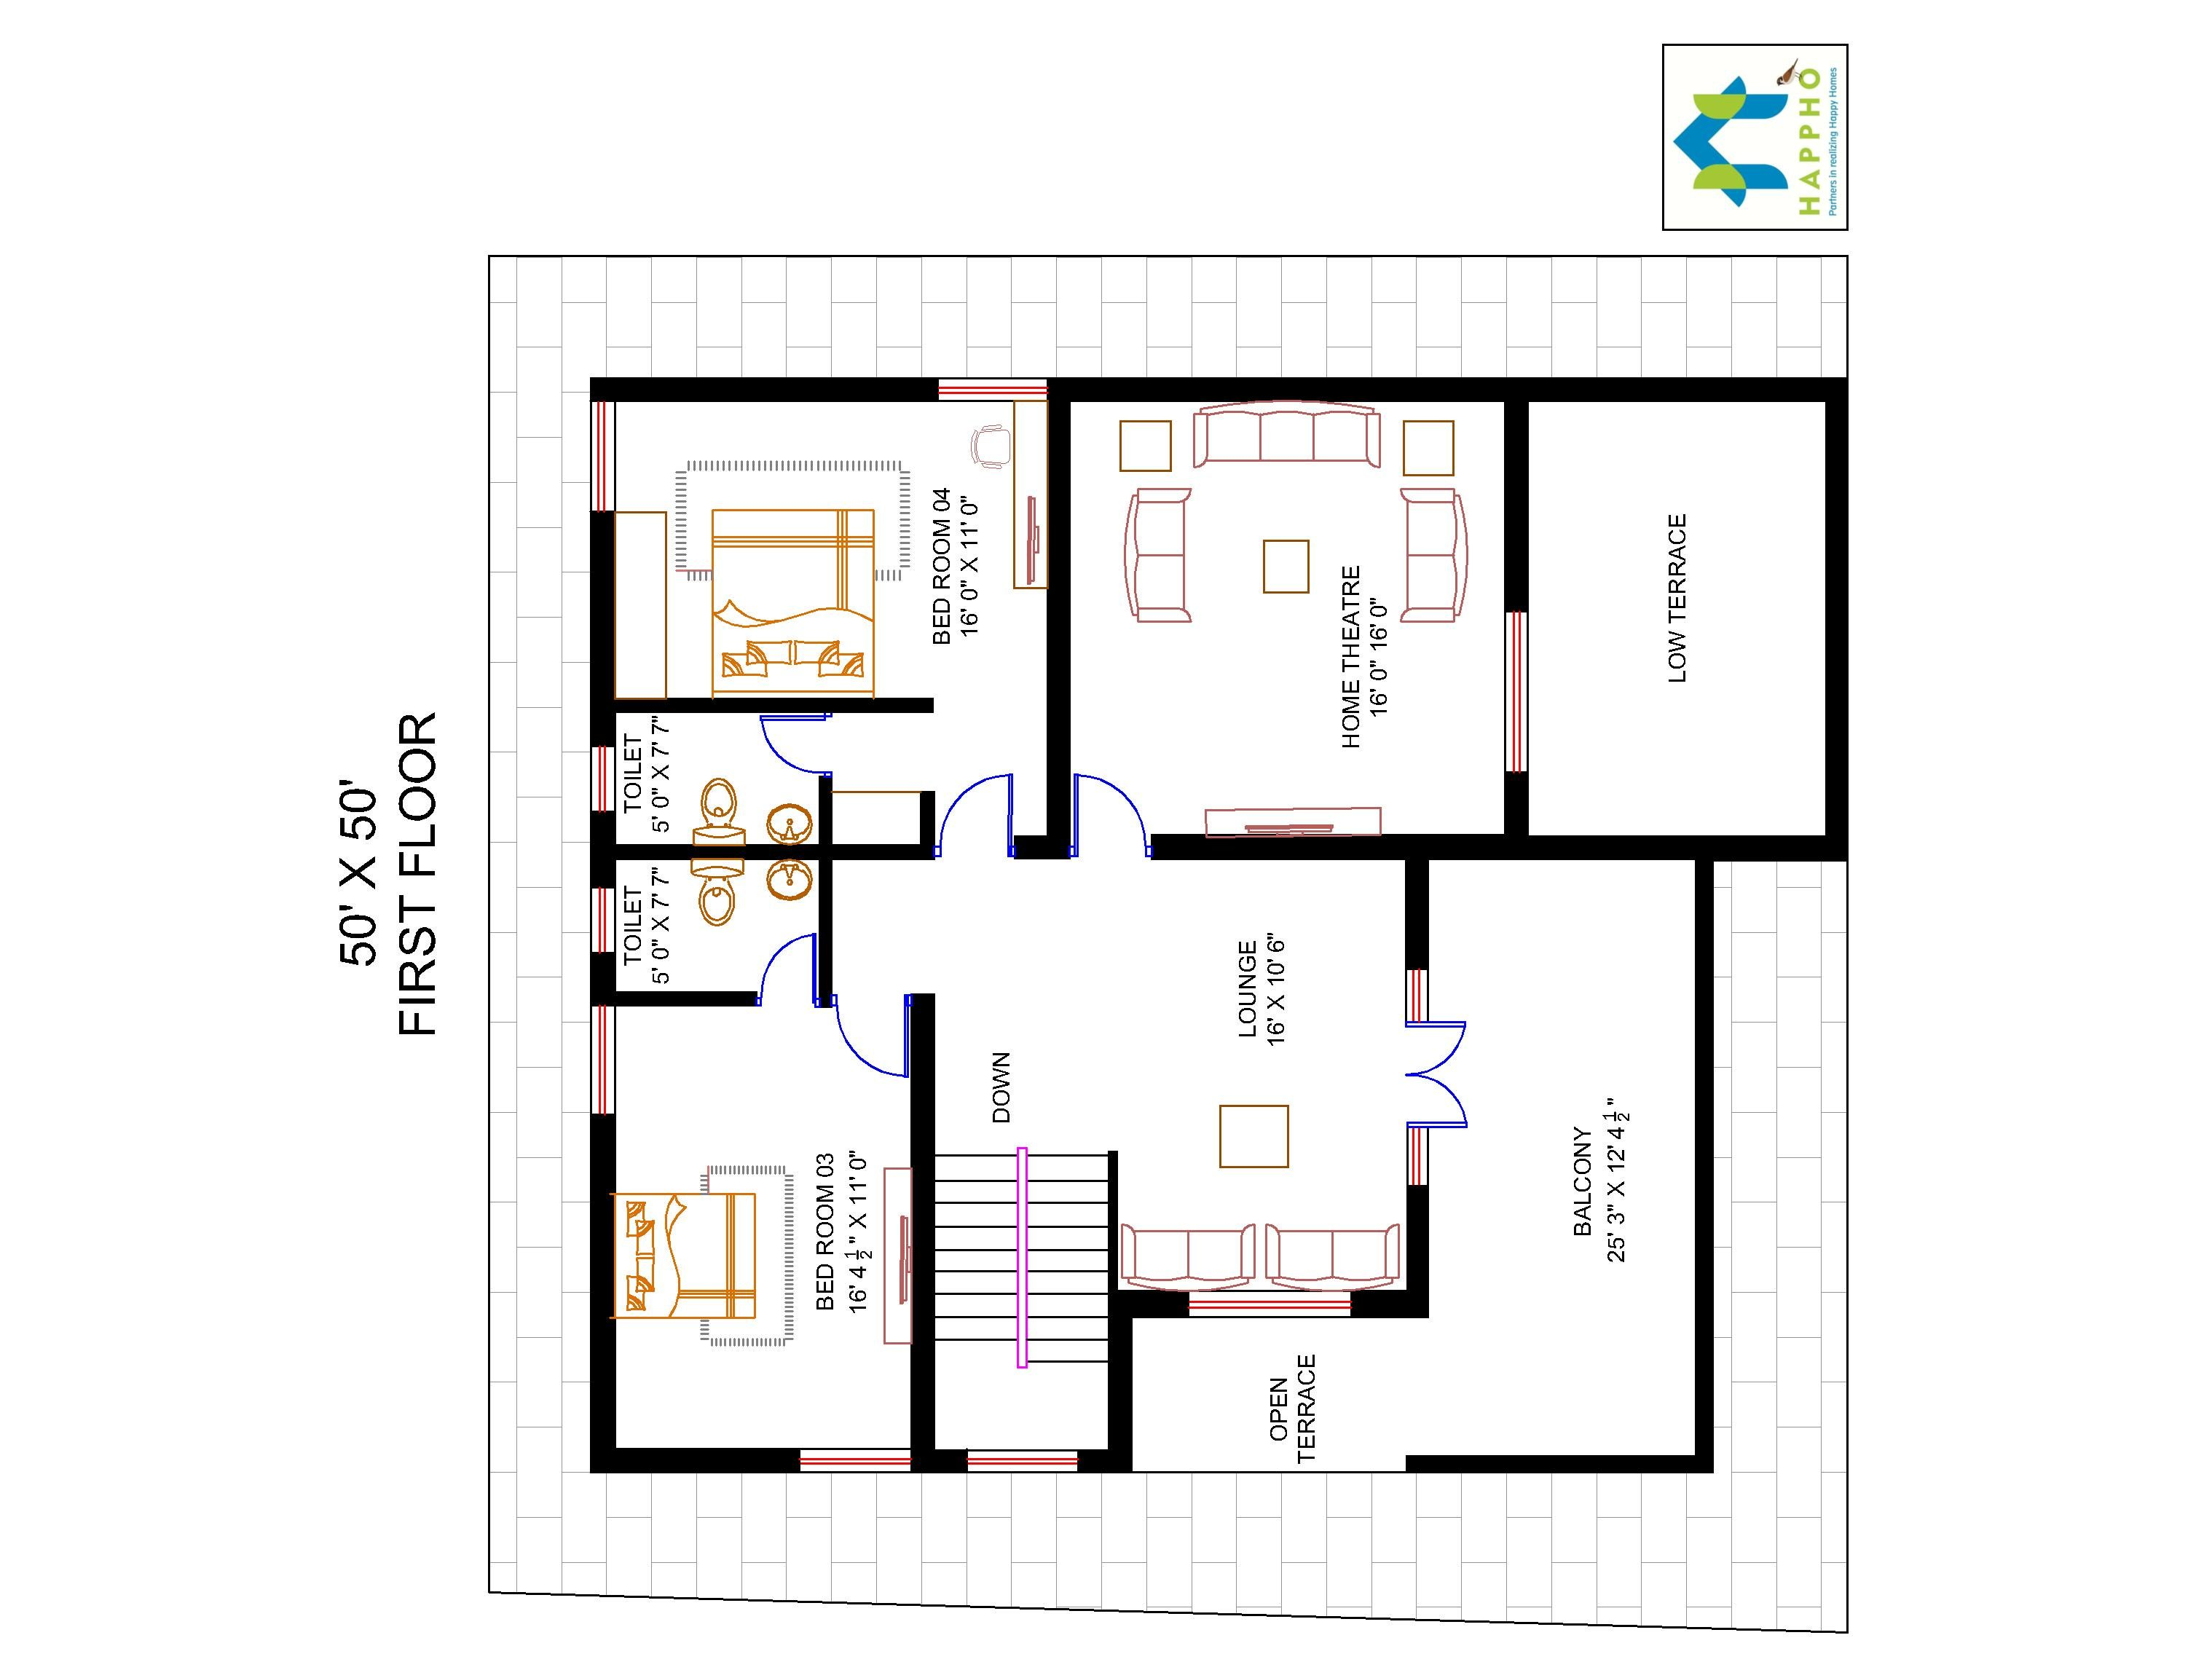 2500 sq ft bungalow floor plans for 2500 square foot house plans